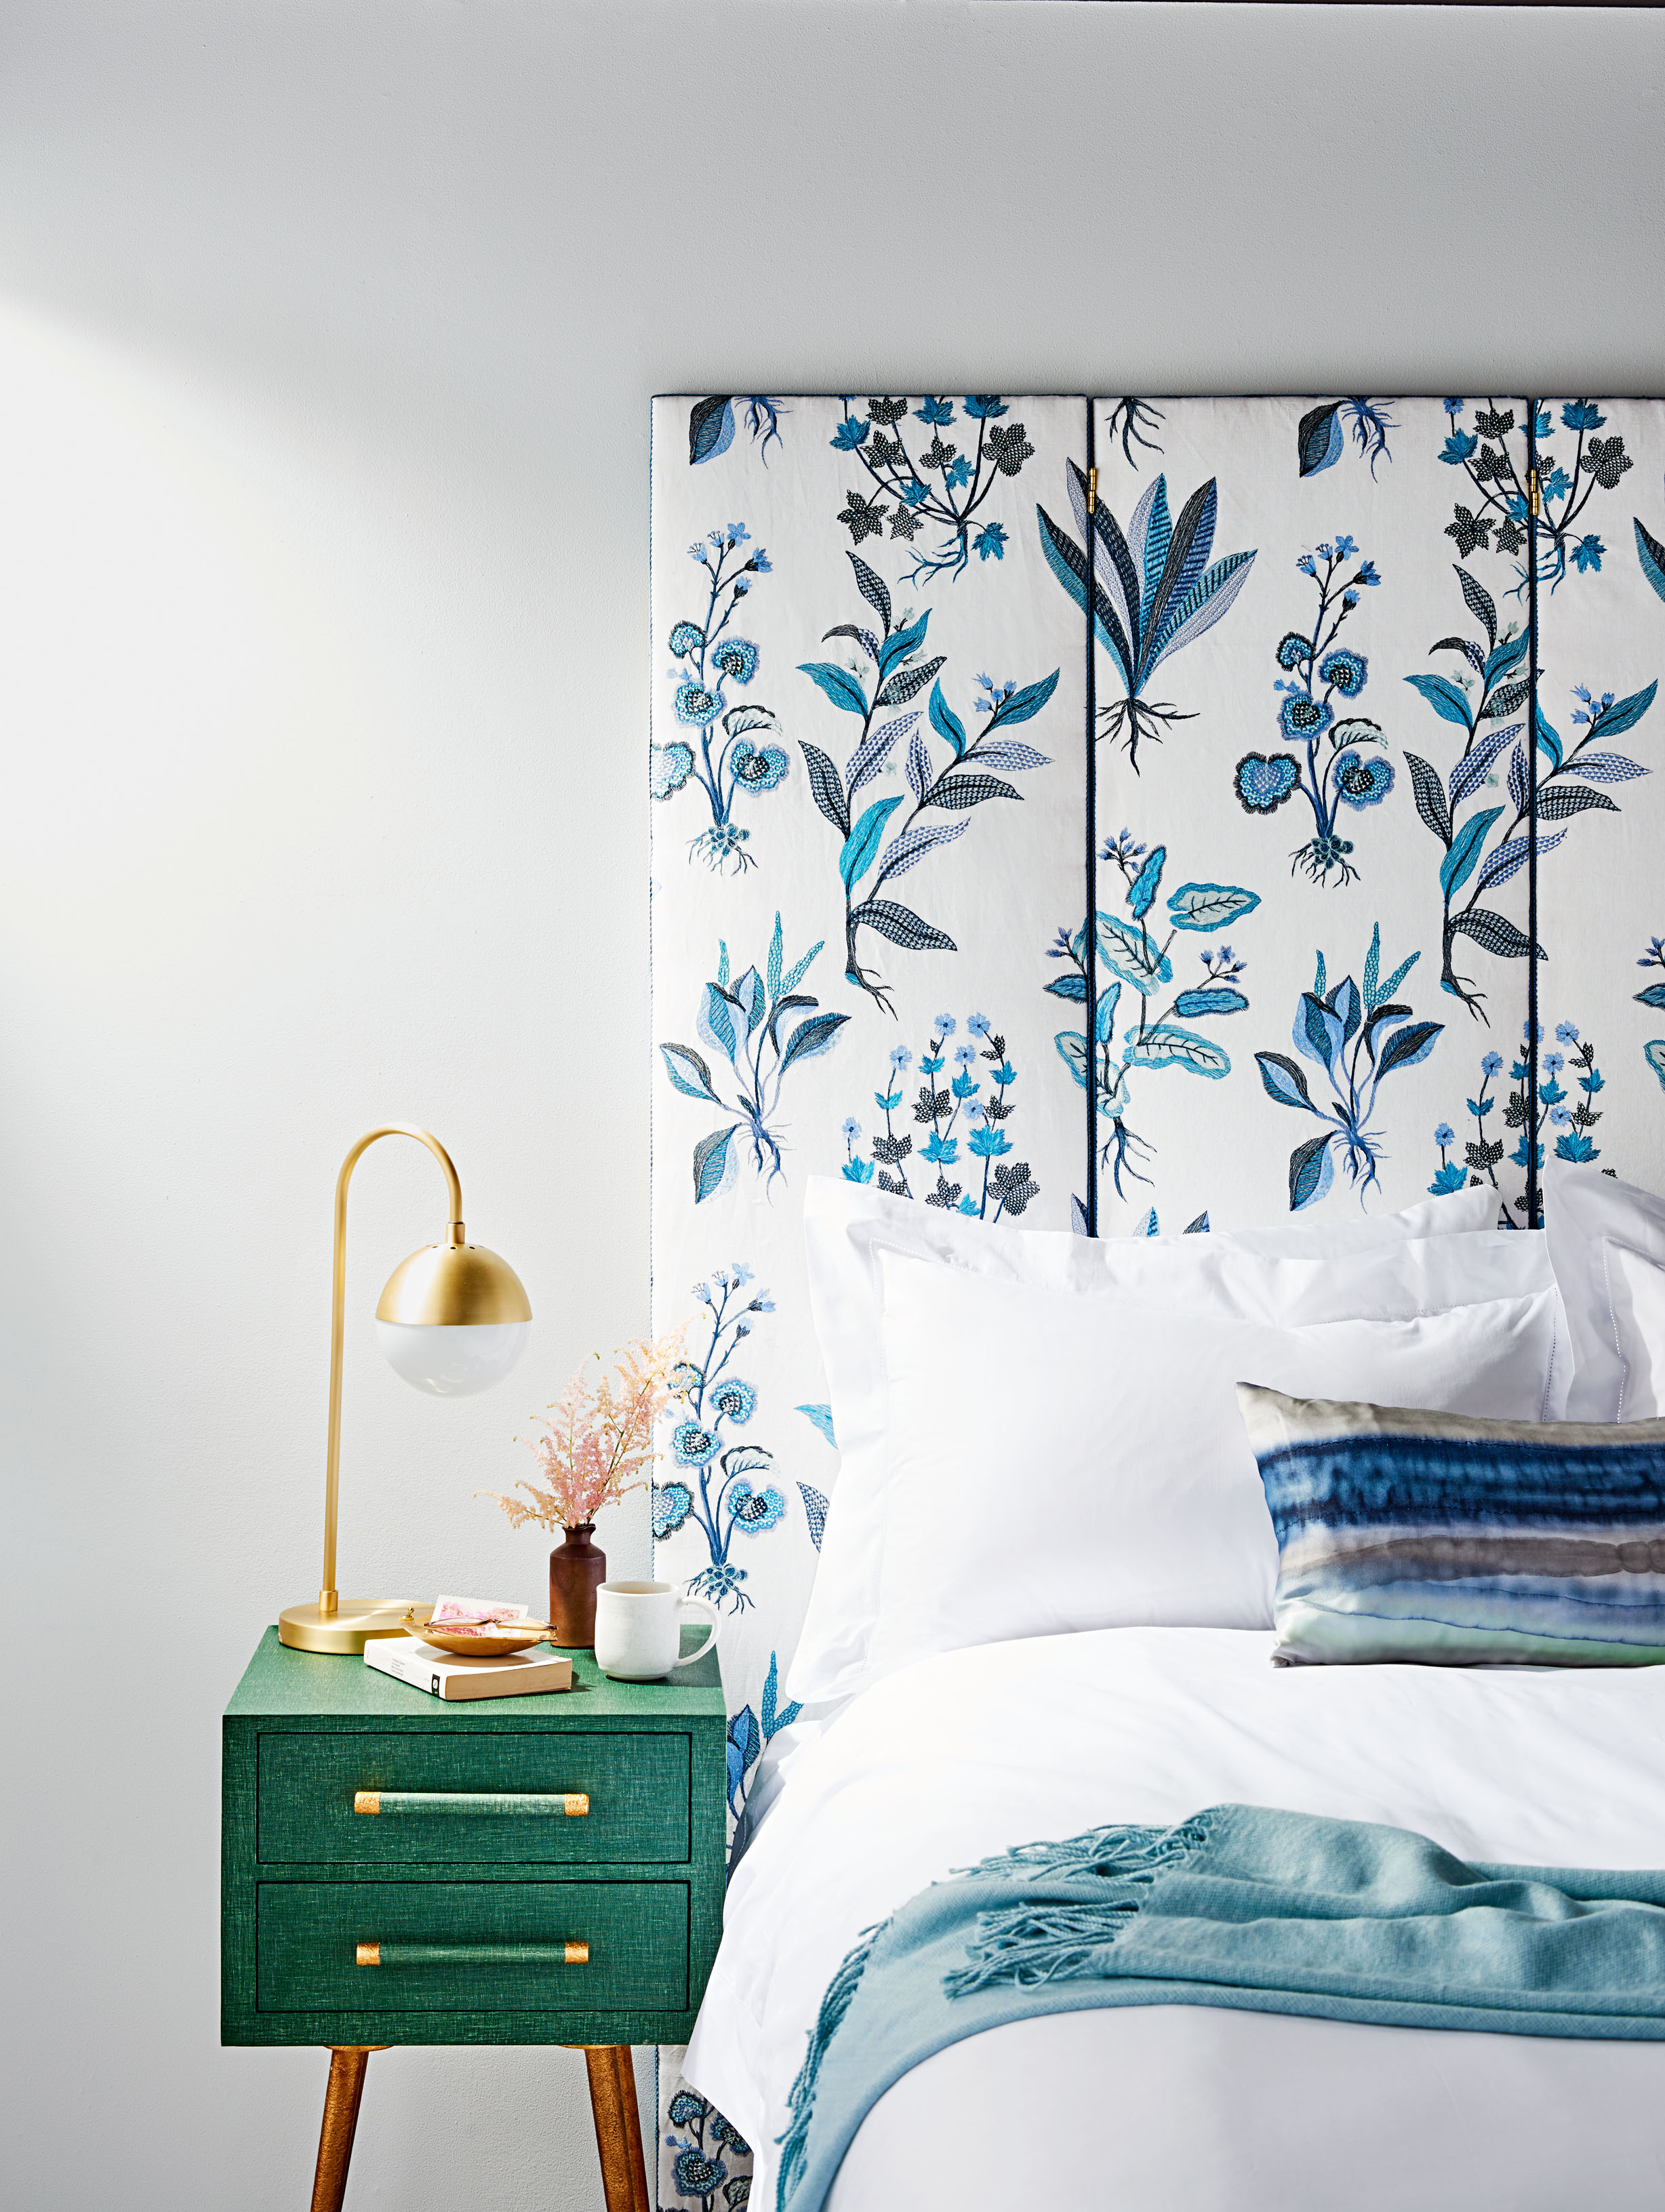 11 DIY Headboard Ideas to Give Your Bed a Boost | Martha ...